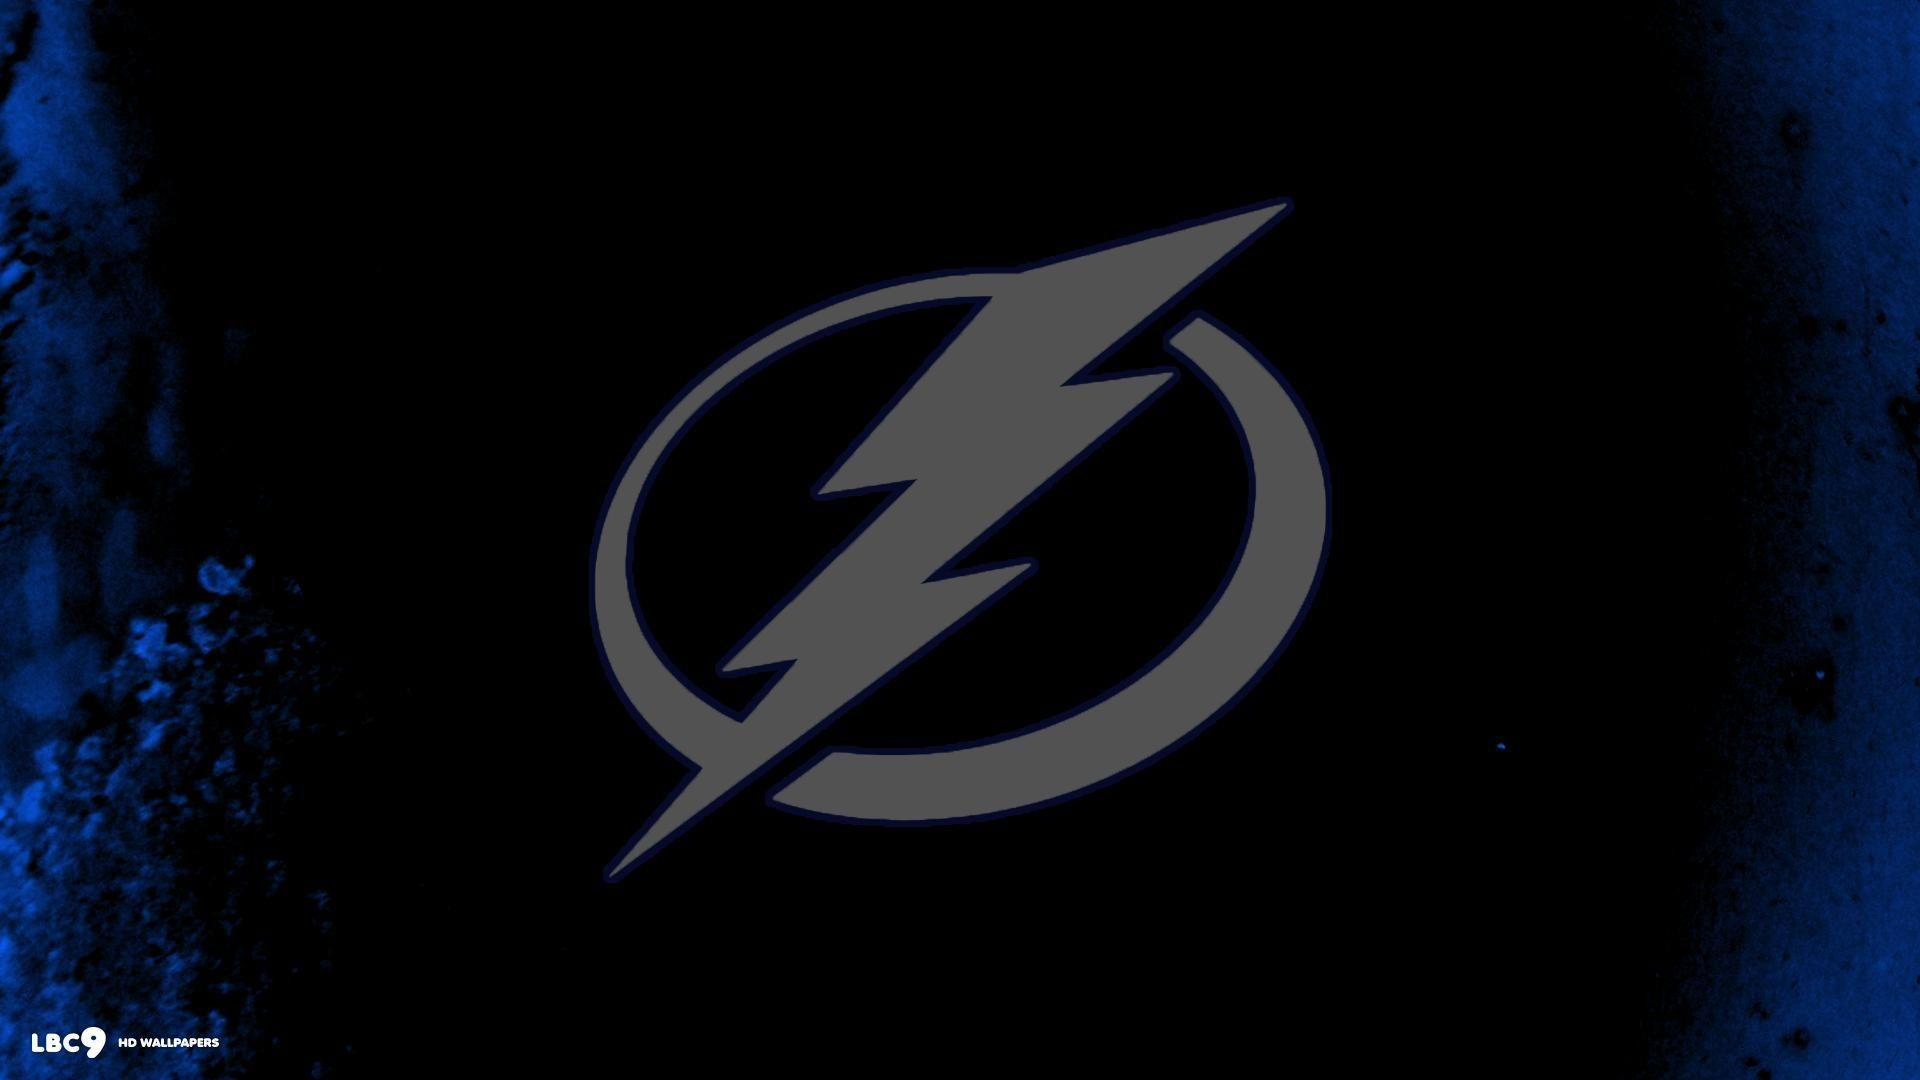 tampa bay lightning wallpaper 4/4 | hockey teams hd backgrounds